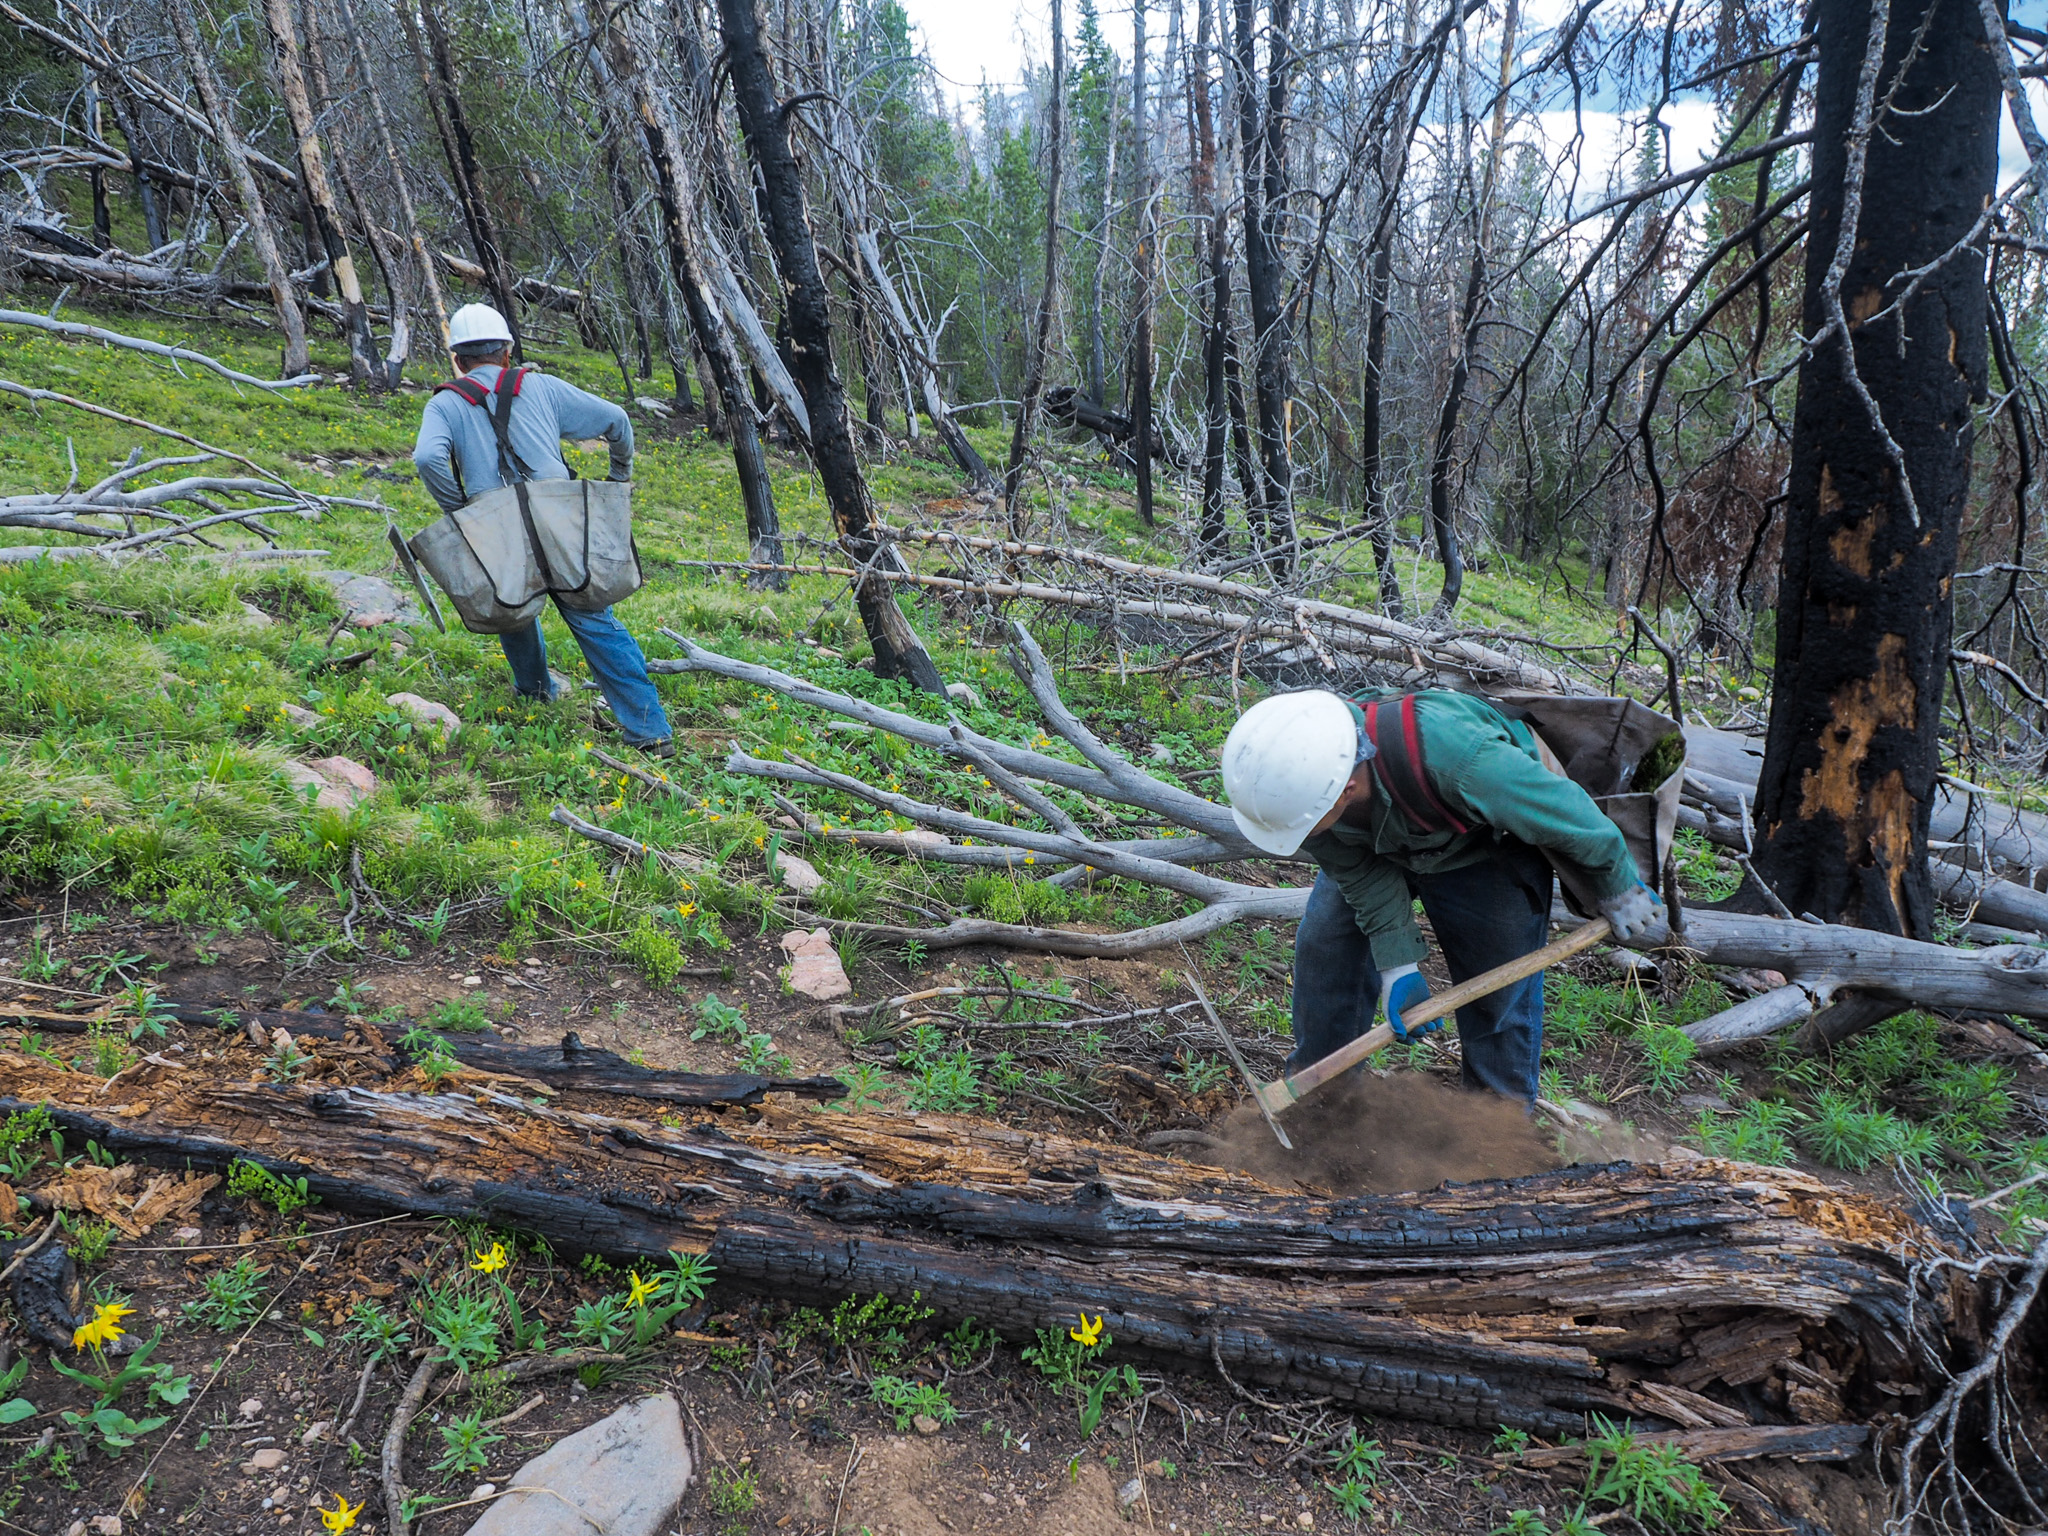 A tree-planting crew works its way up the slope at the site of the recent Millie Fire—Custer-Gallatin National Forest, Montana.